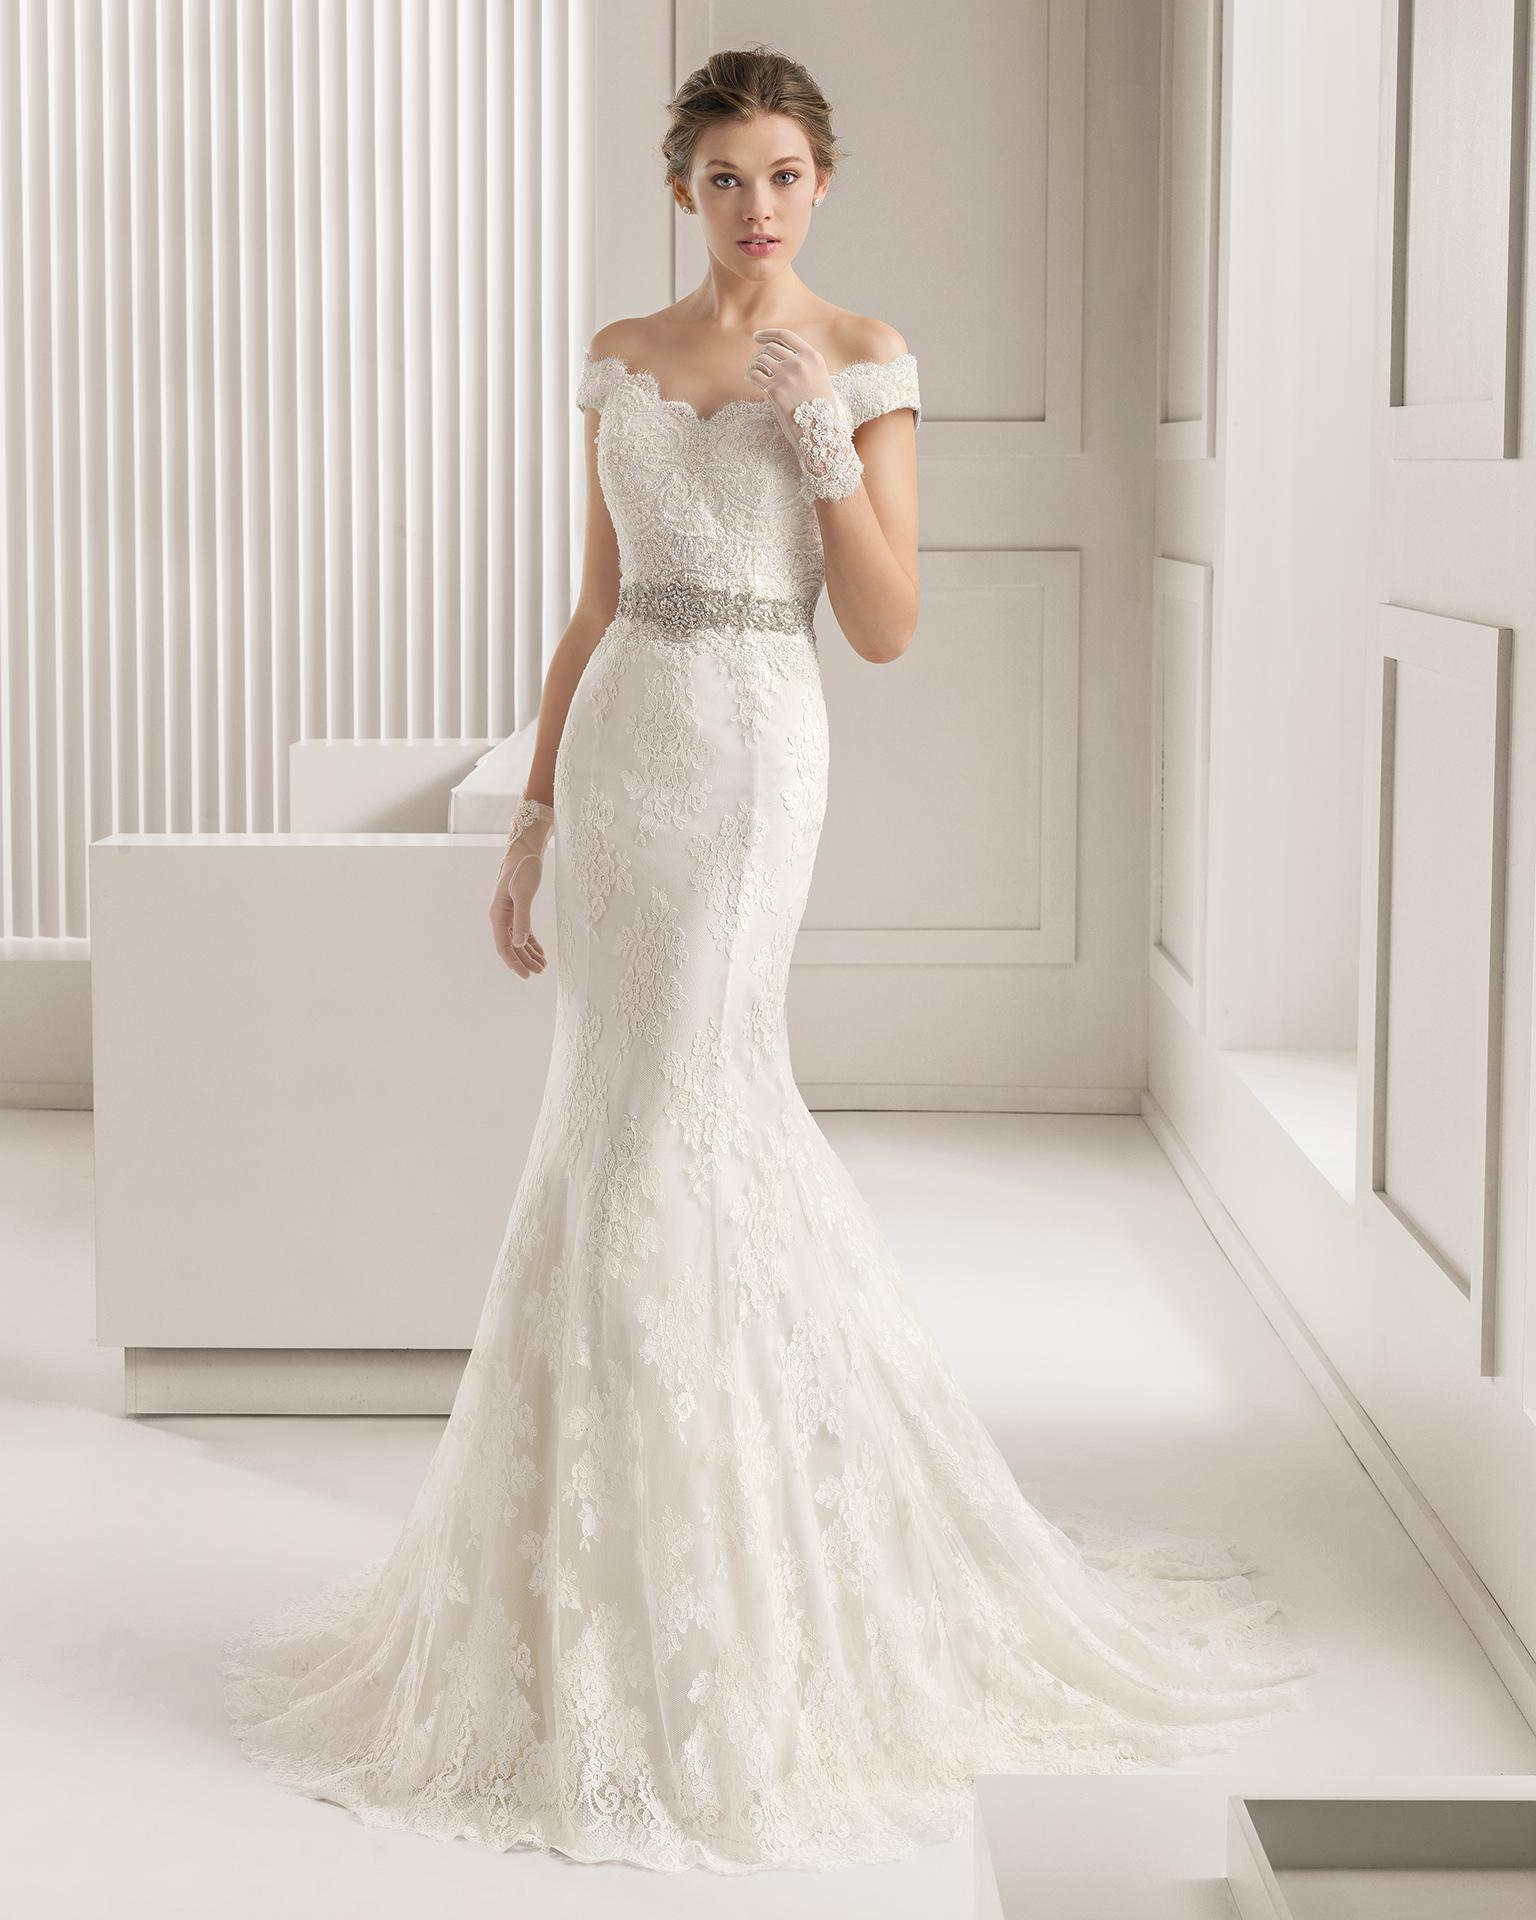 off shoulder wedding dresses white mermaid wedding dresses vintage lace mermaid wedding dresses off shoulder button back sequins applique bodice bridal gown court train soft tulle crystal belt lace wedding